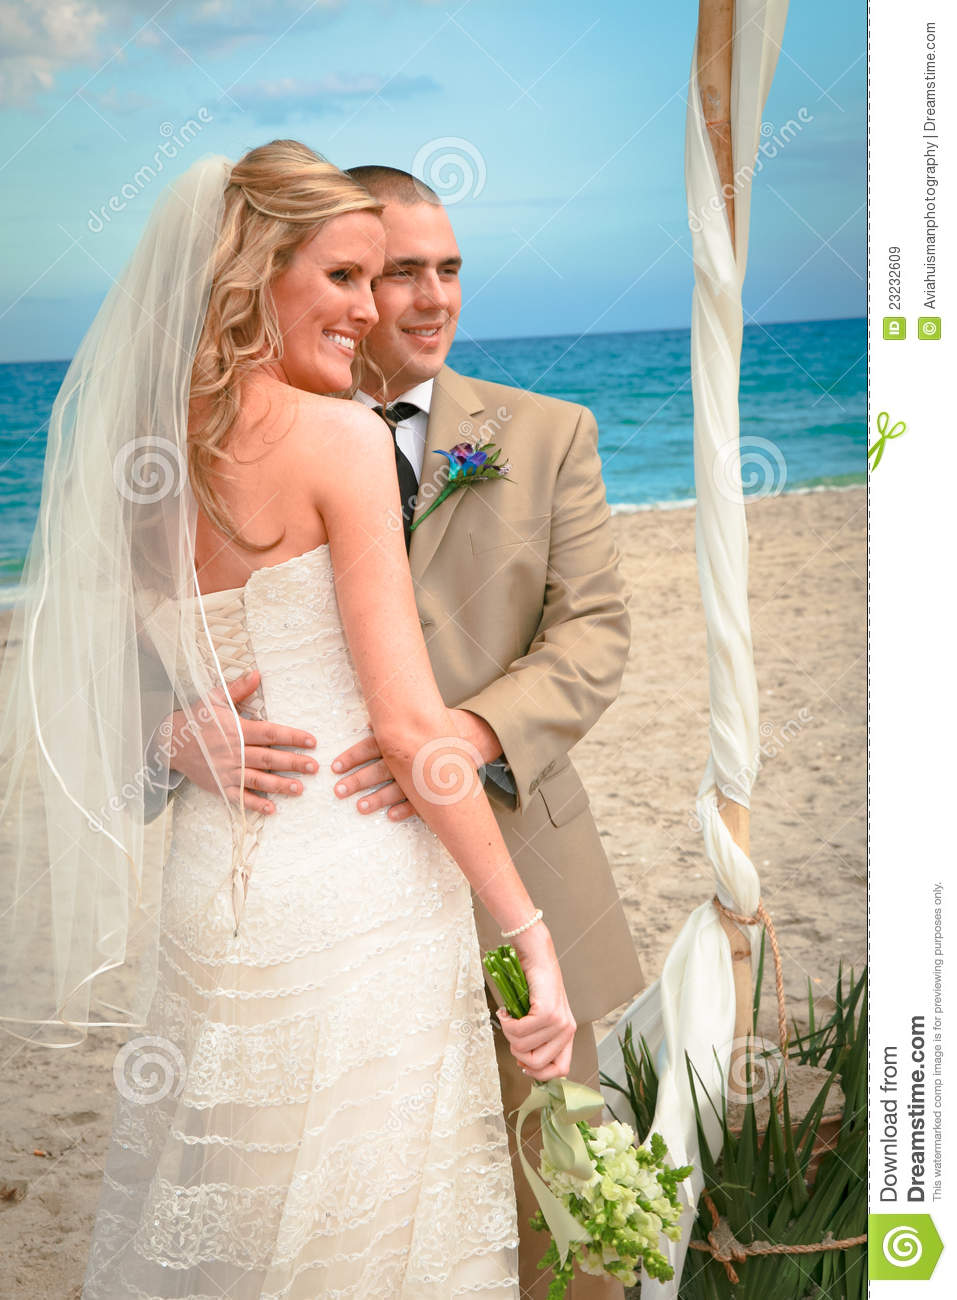 Beach Wedding Bride And Groom Royalty Free Stock Images